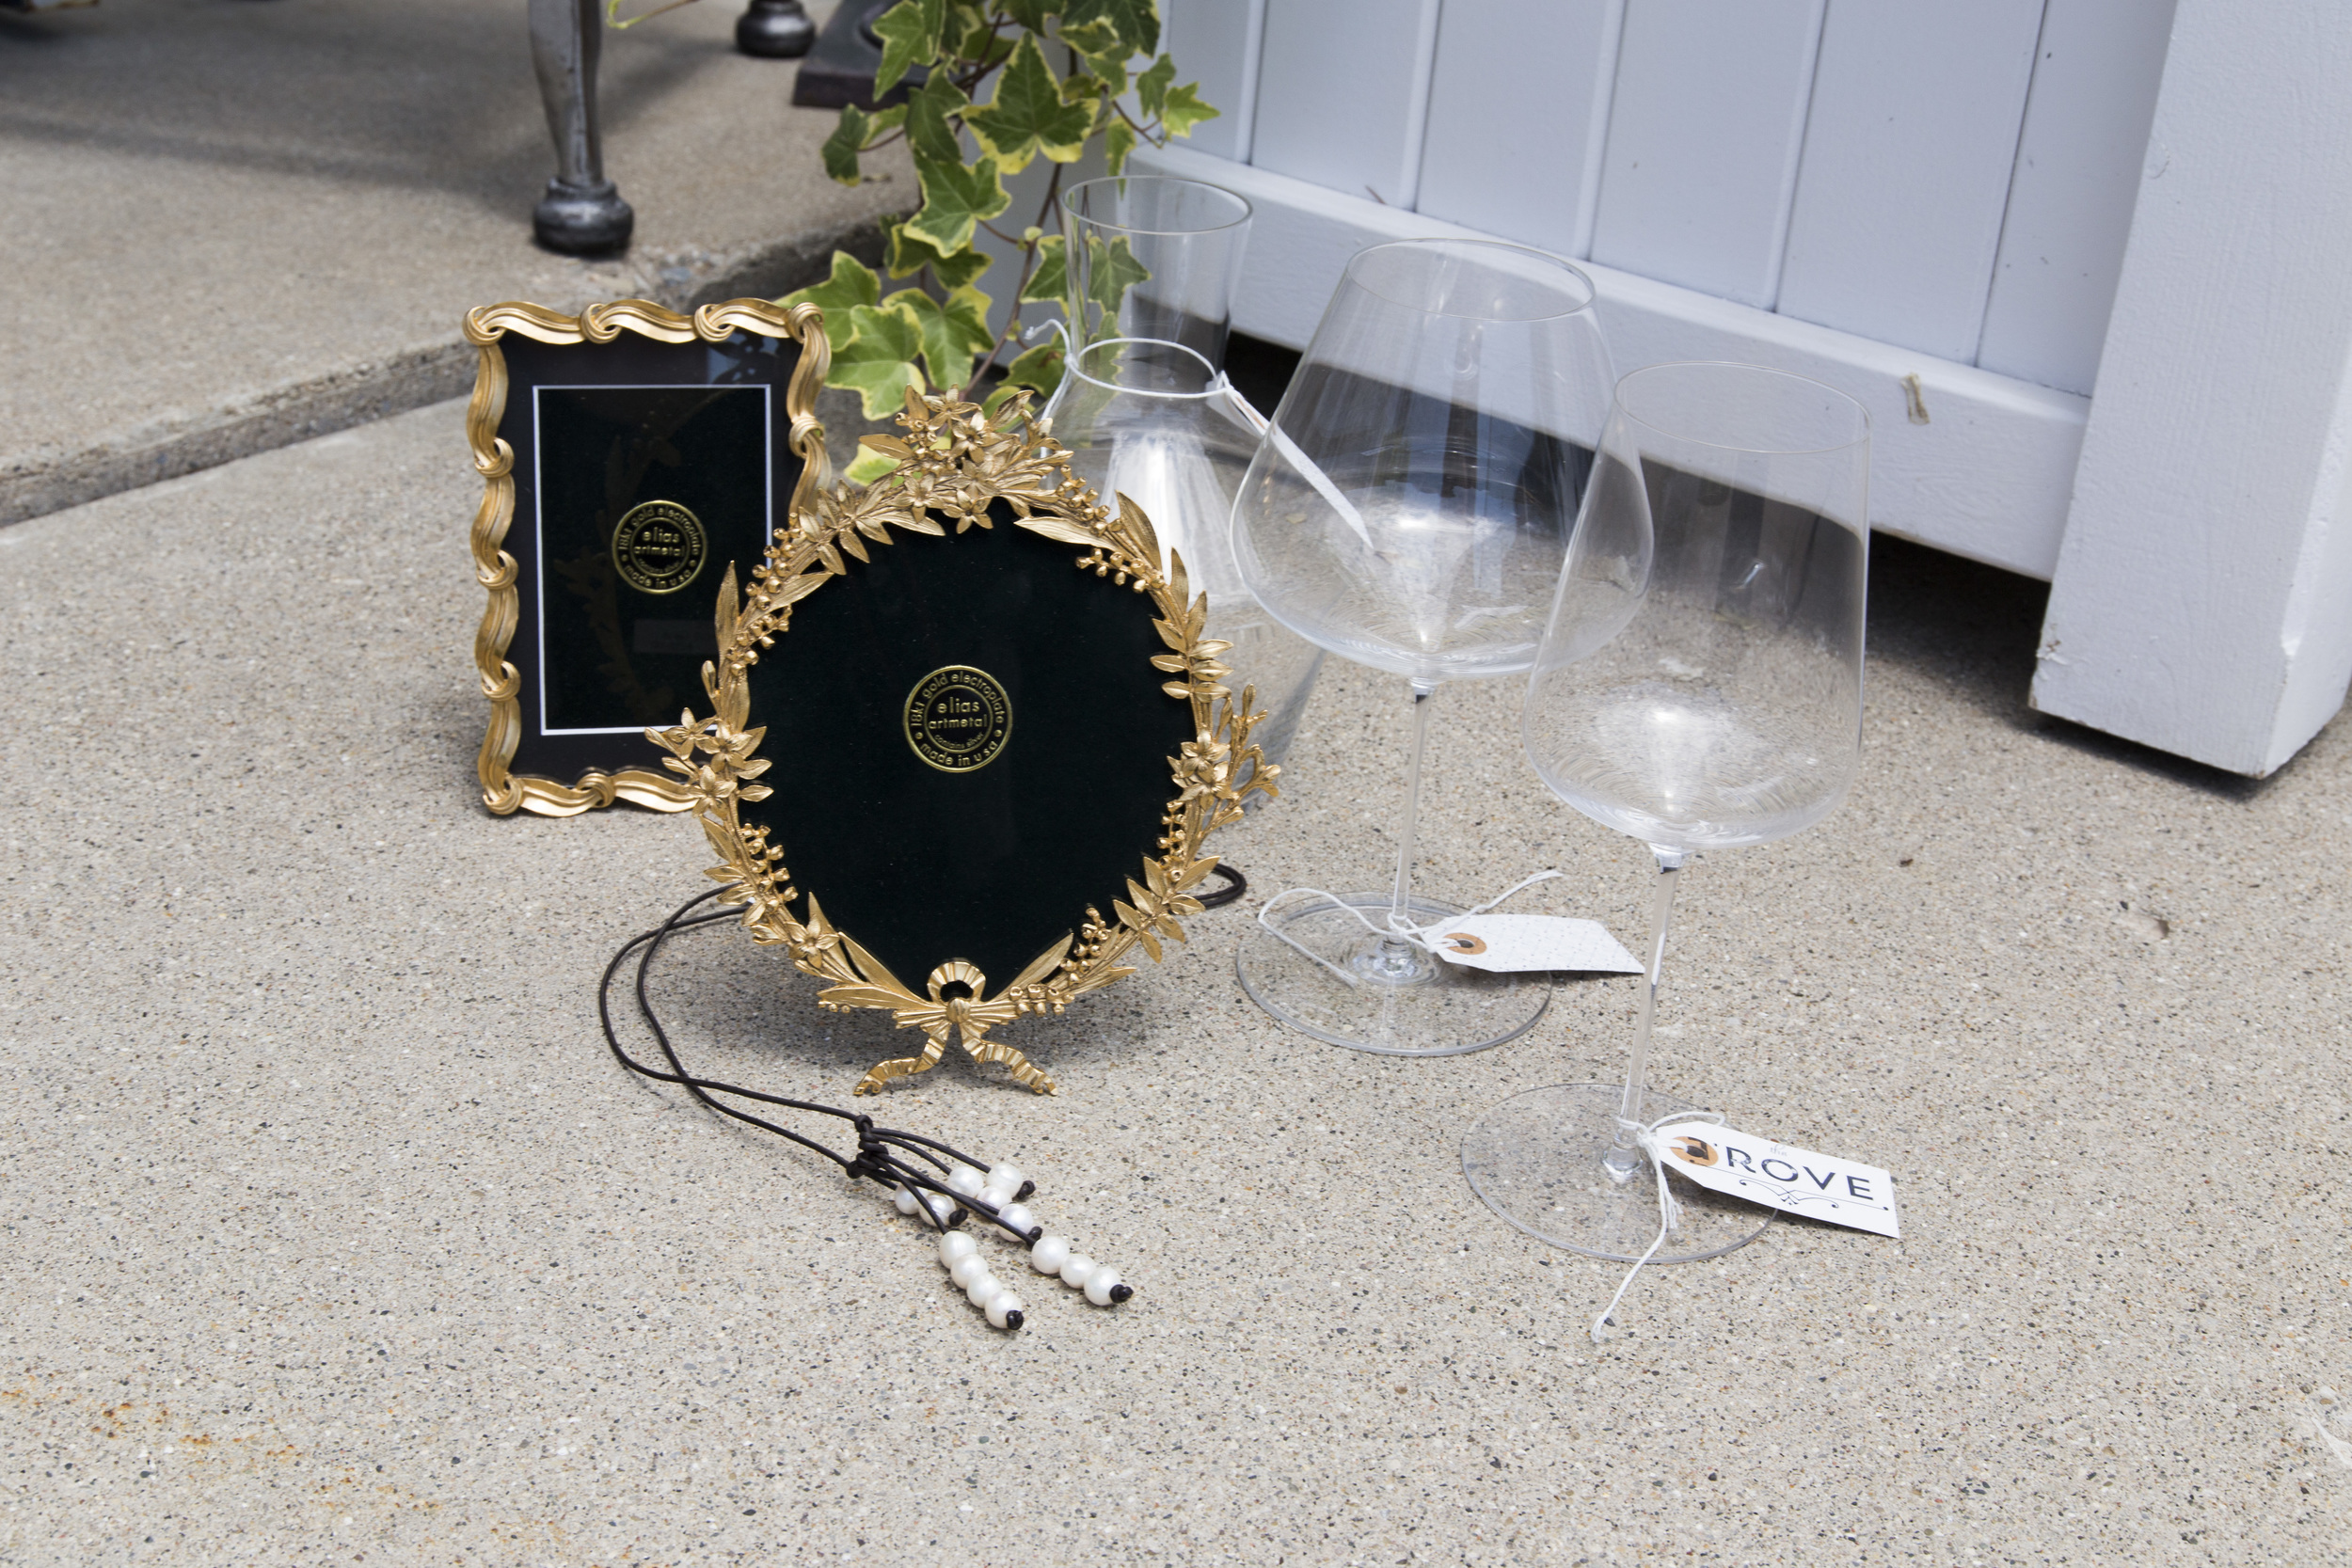 An elegant picture frame is a tasteful gift for parents of the happy couple. And in our experience, quality wine glasses are always appreciated.